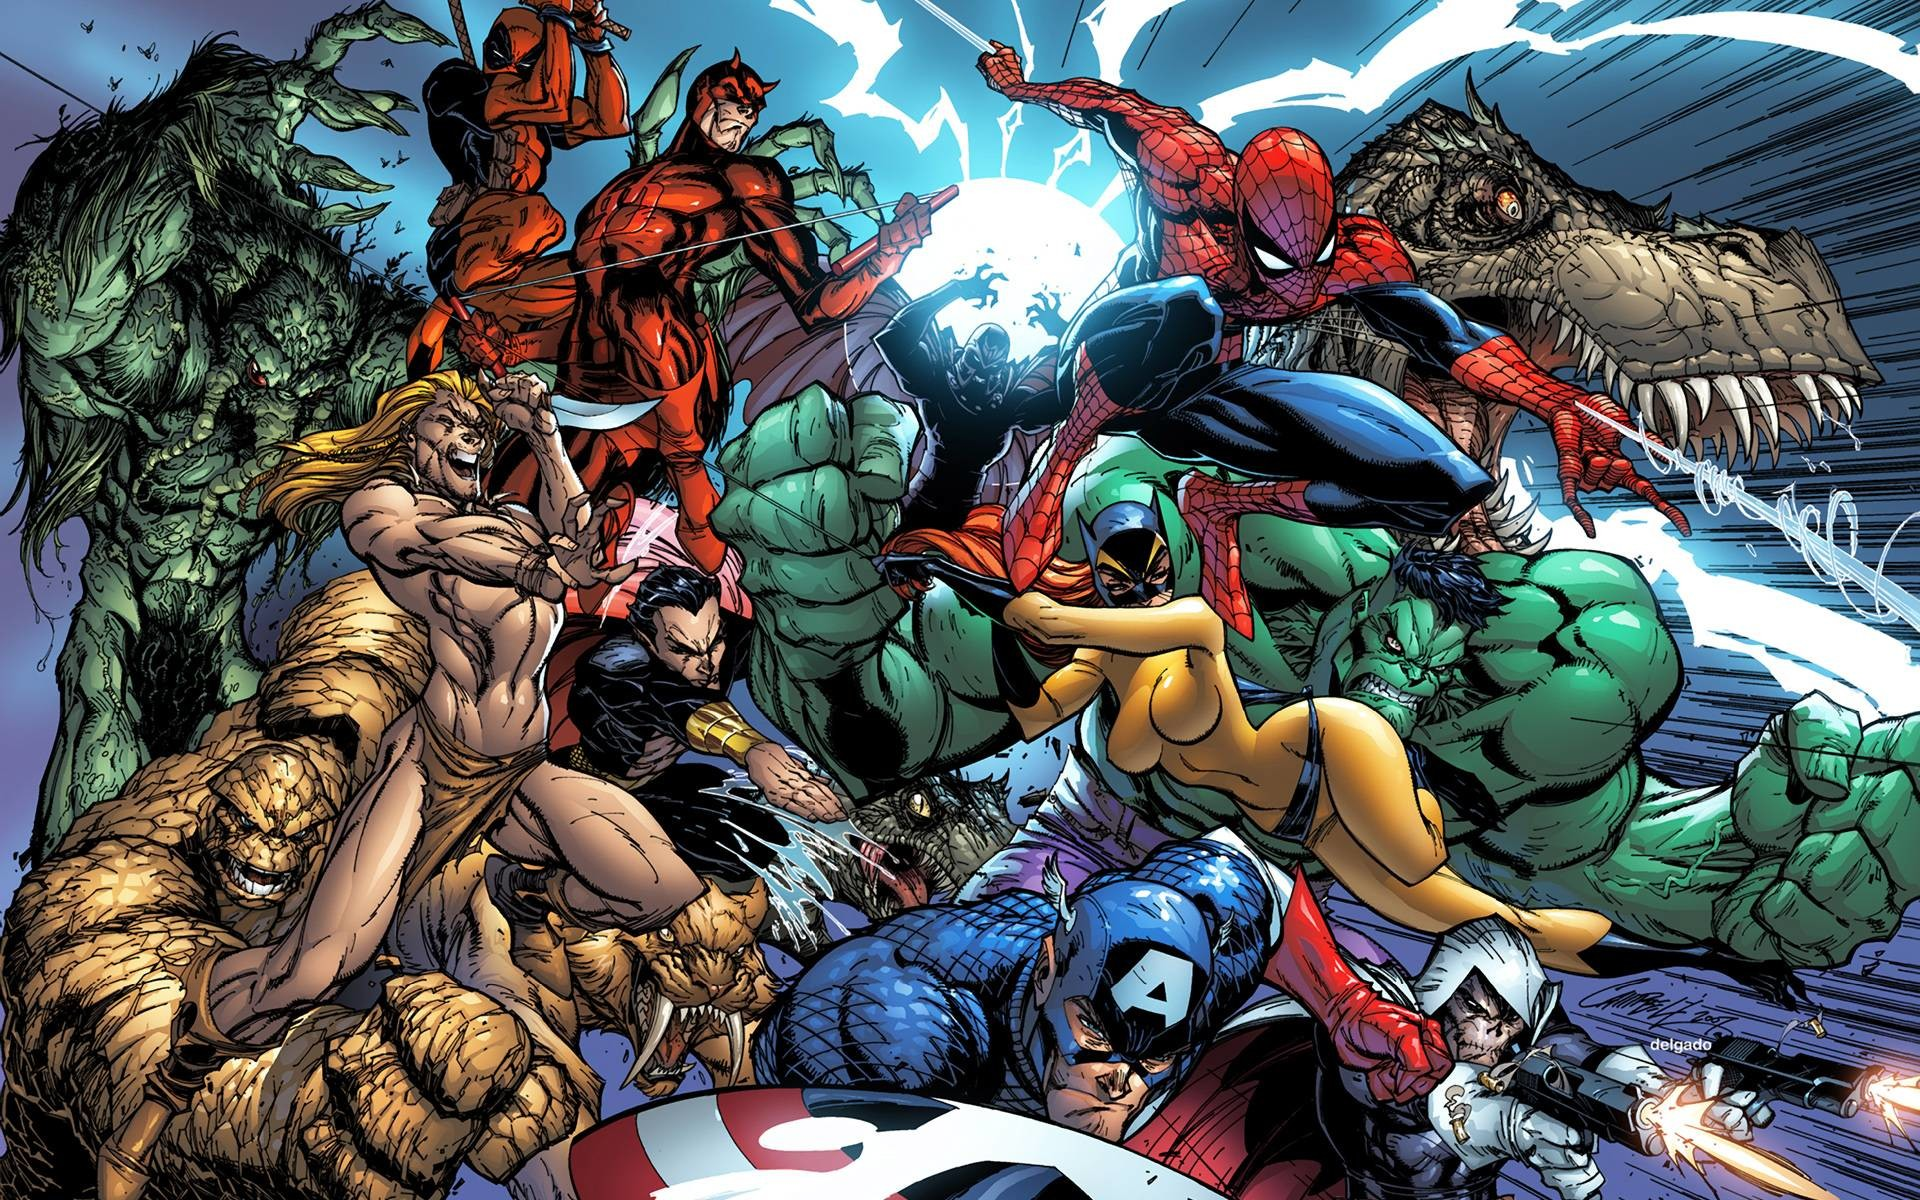 Marvel hd wallpapers 1080p 74 images 1920x1200 marvel heroes wallpapers full hd wallpaper search voltagebd Image collections